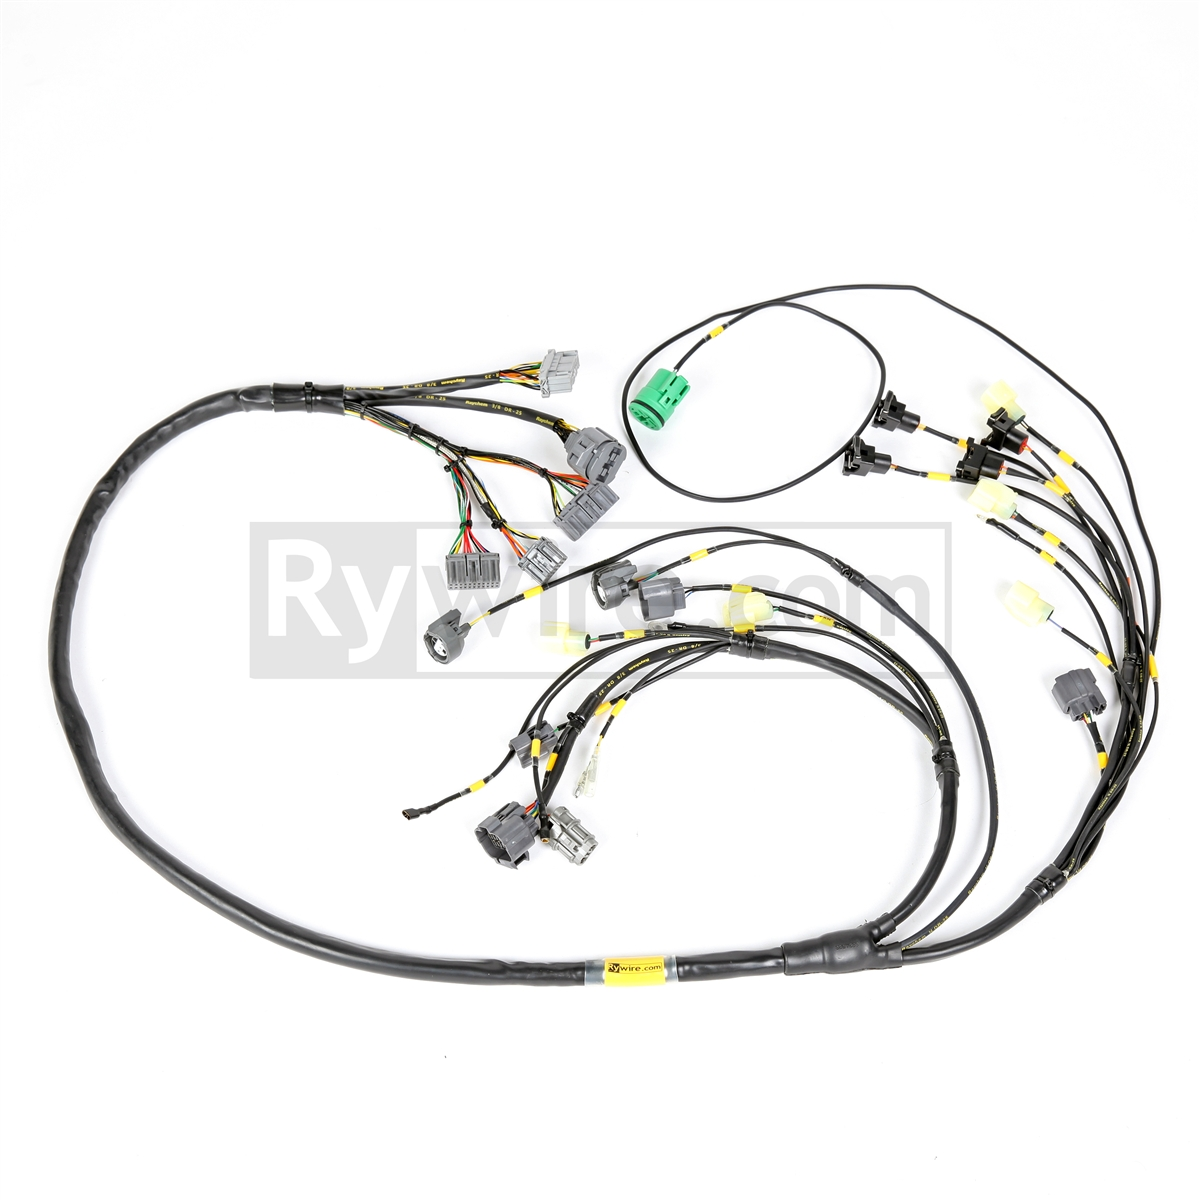 Rywire.com - Mil-Spec F-Series (F20b) & H-Series (H22) harness on